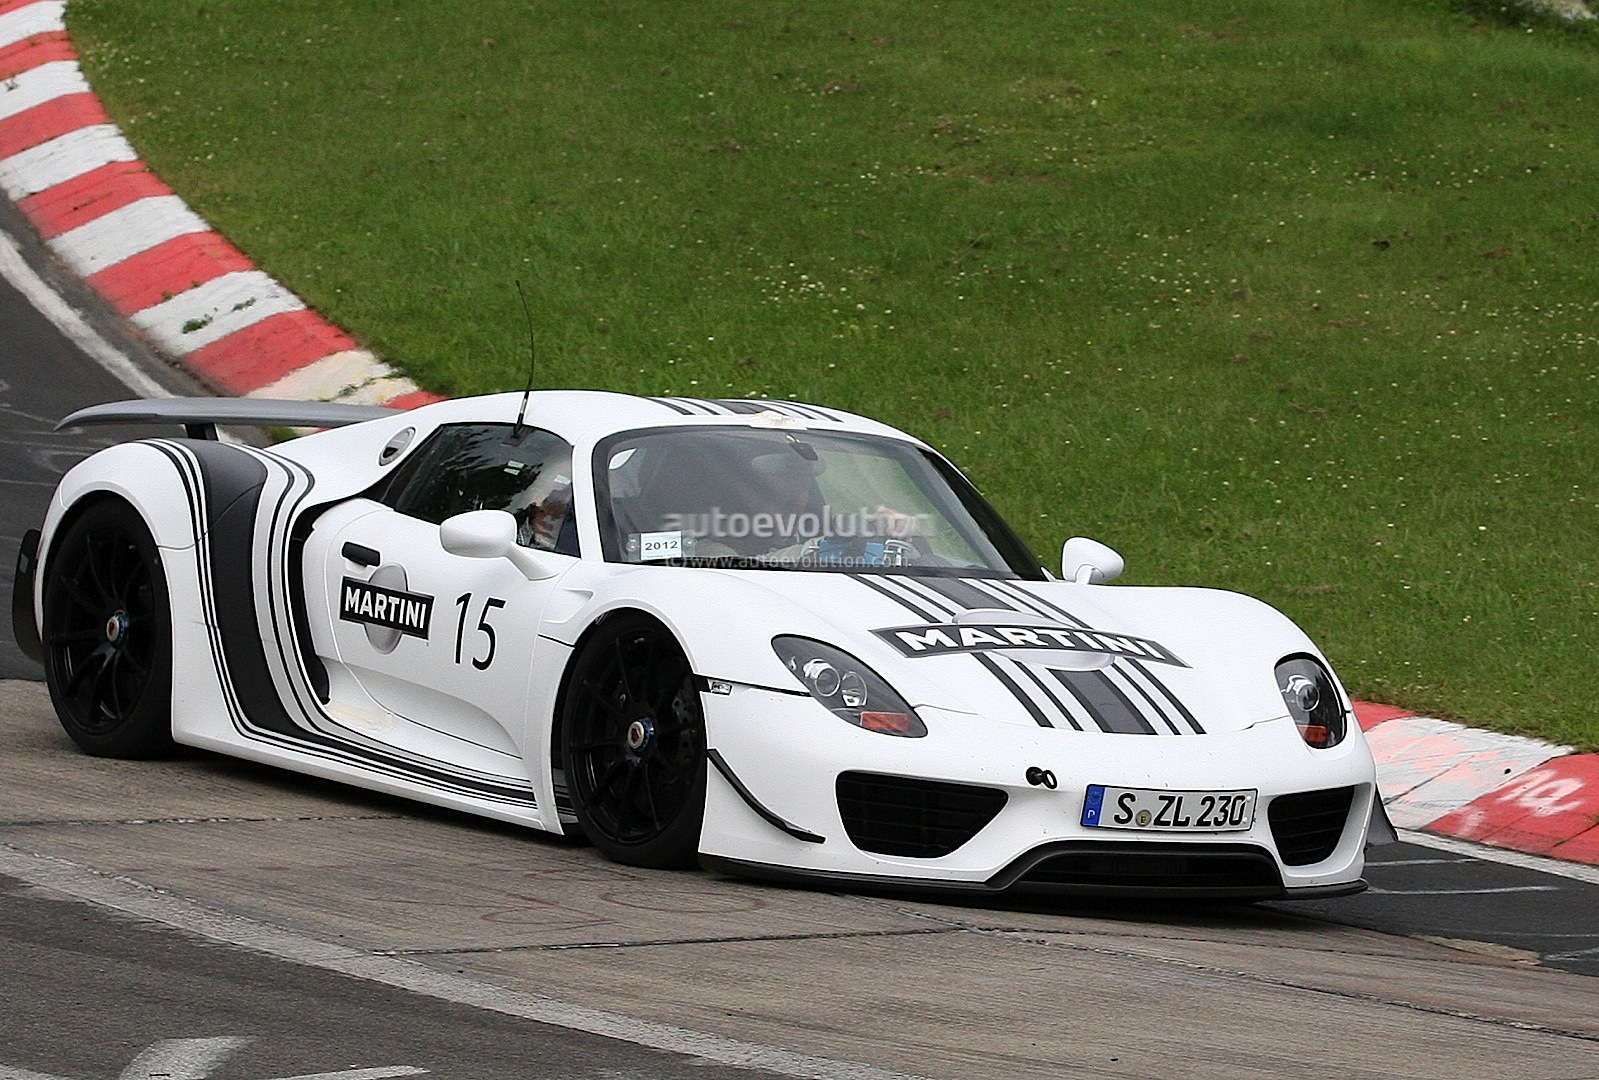 Spyshots: Porsche 918 Spyder in Martini Racing Stripes ...